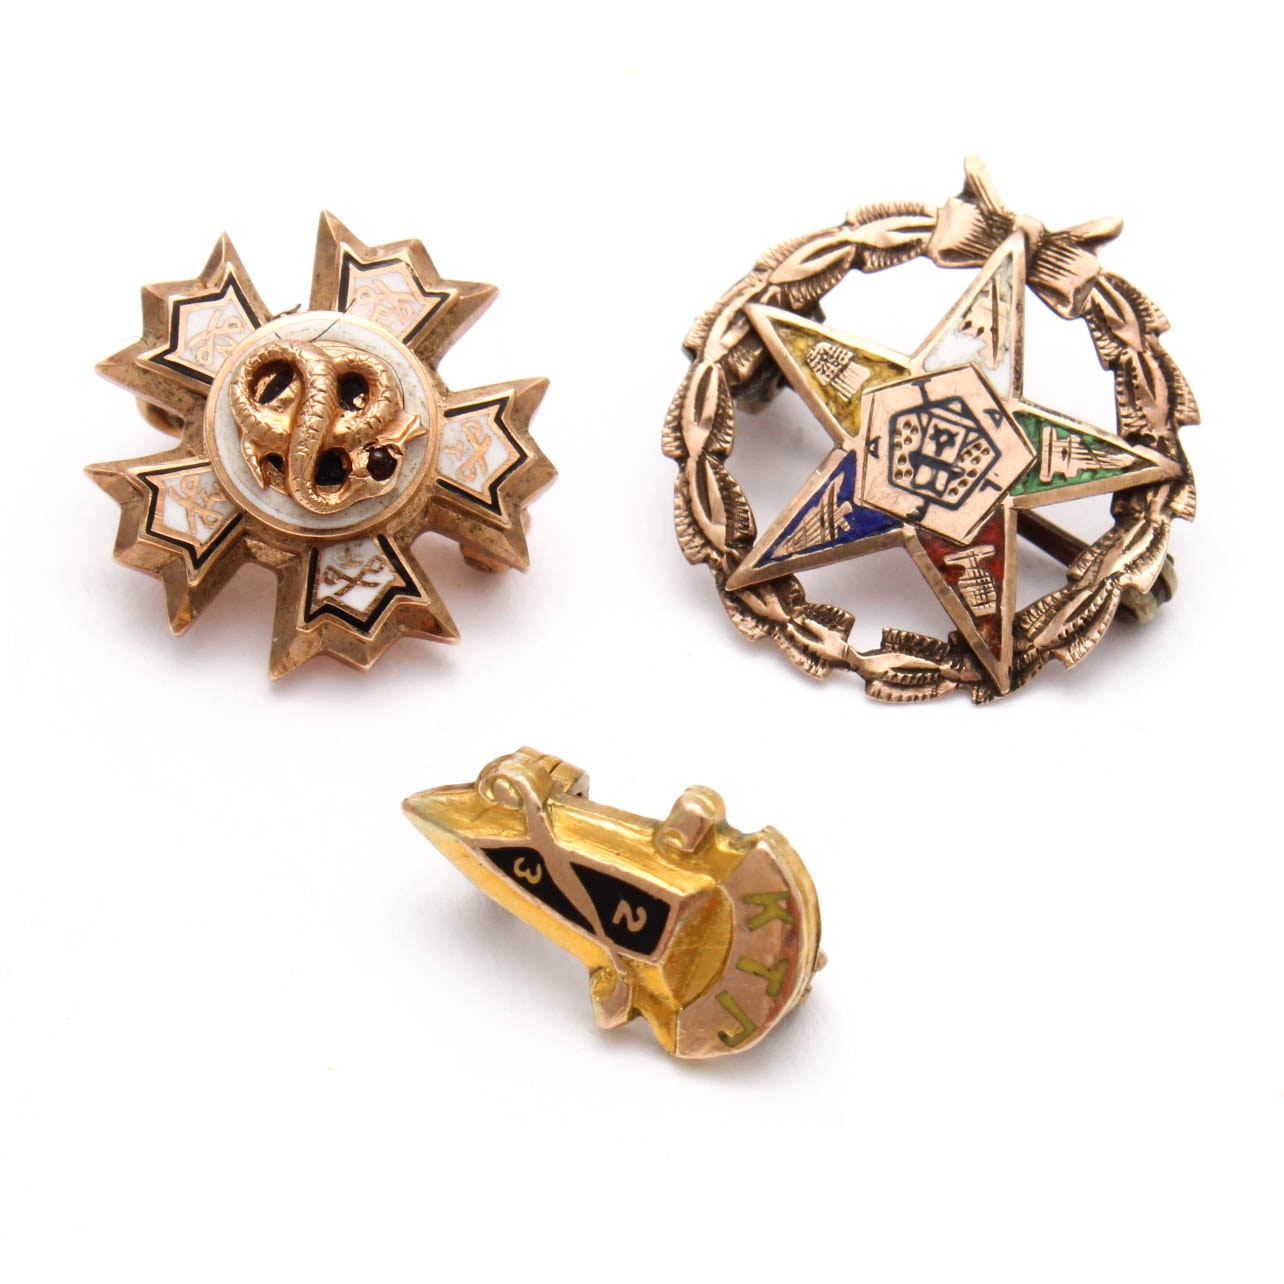 10K and 14K Yellow Gold Fraternal Pins